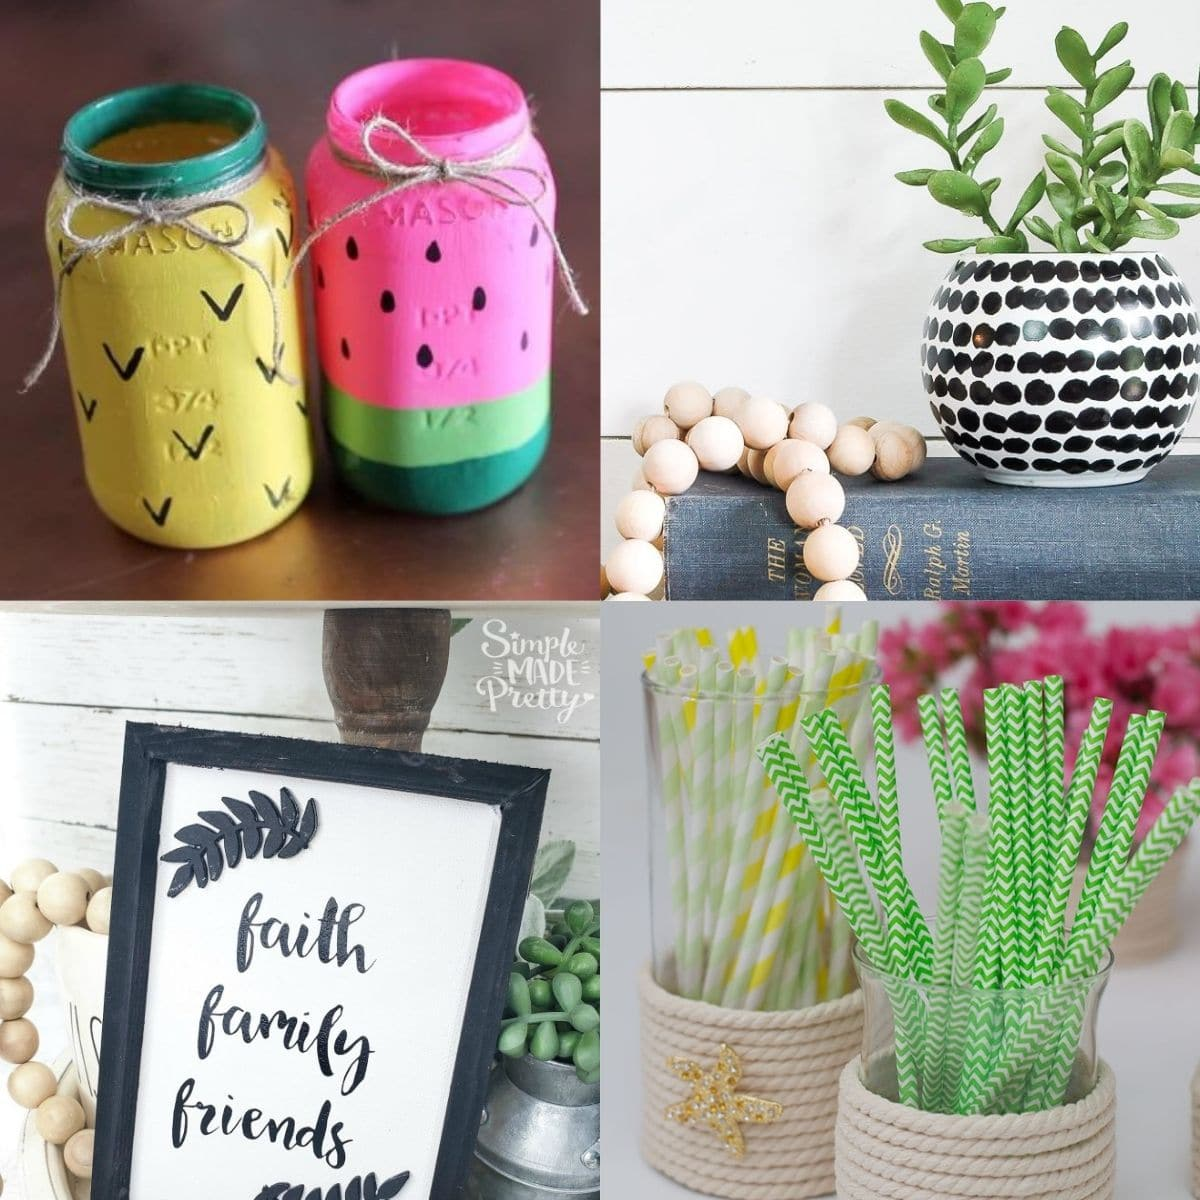 21 Creative Dollar Tree Crafts For Low Budgets Craftsy Hacks